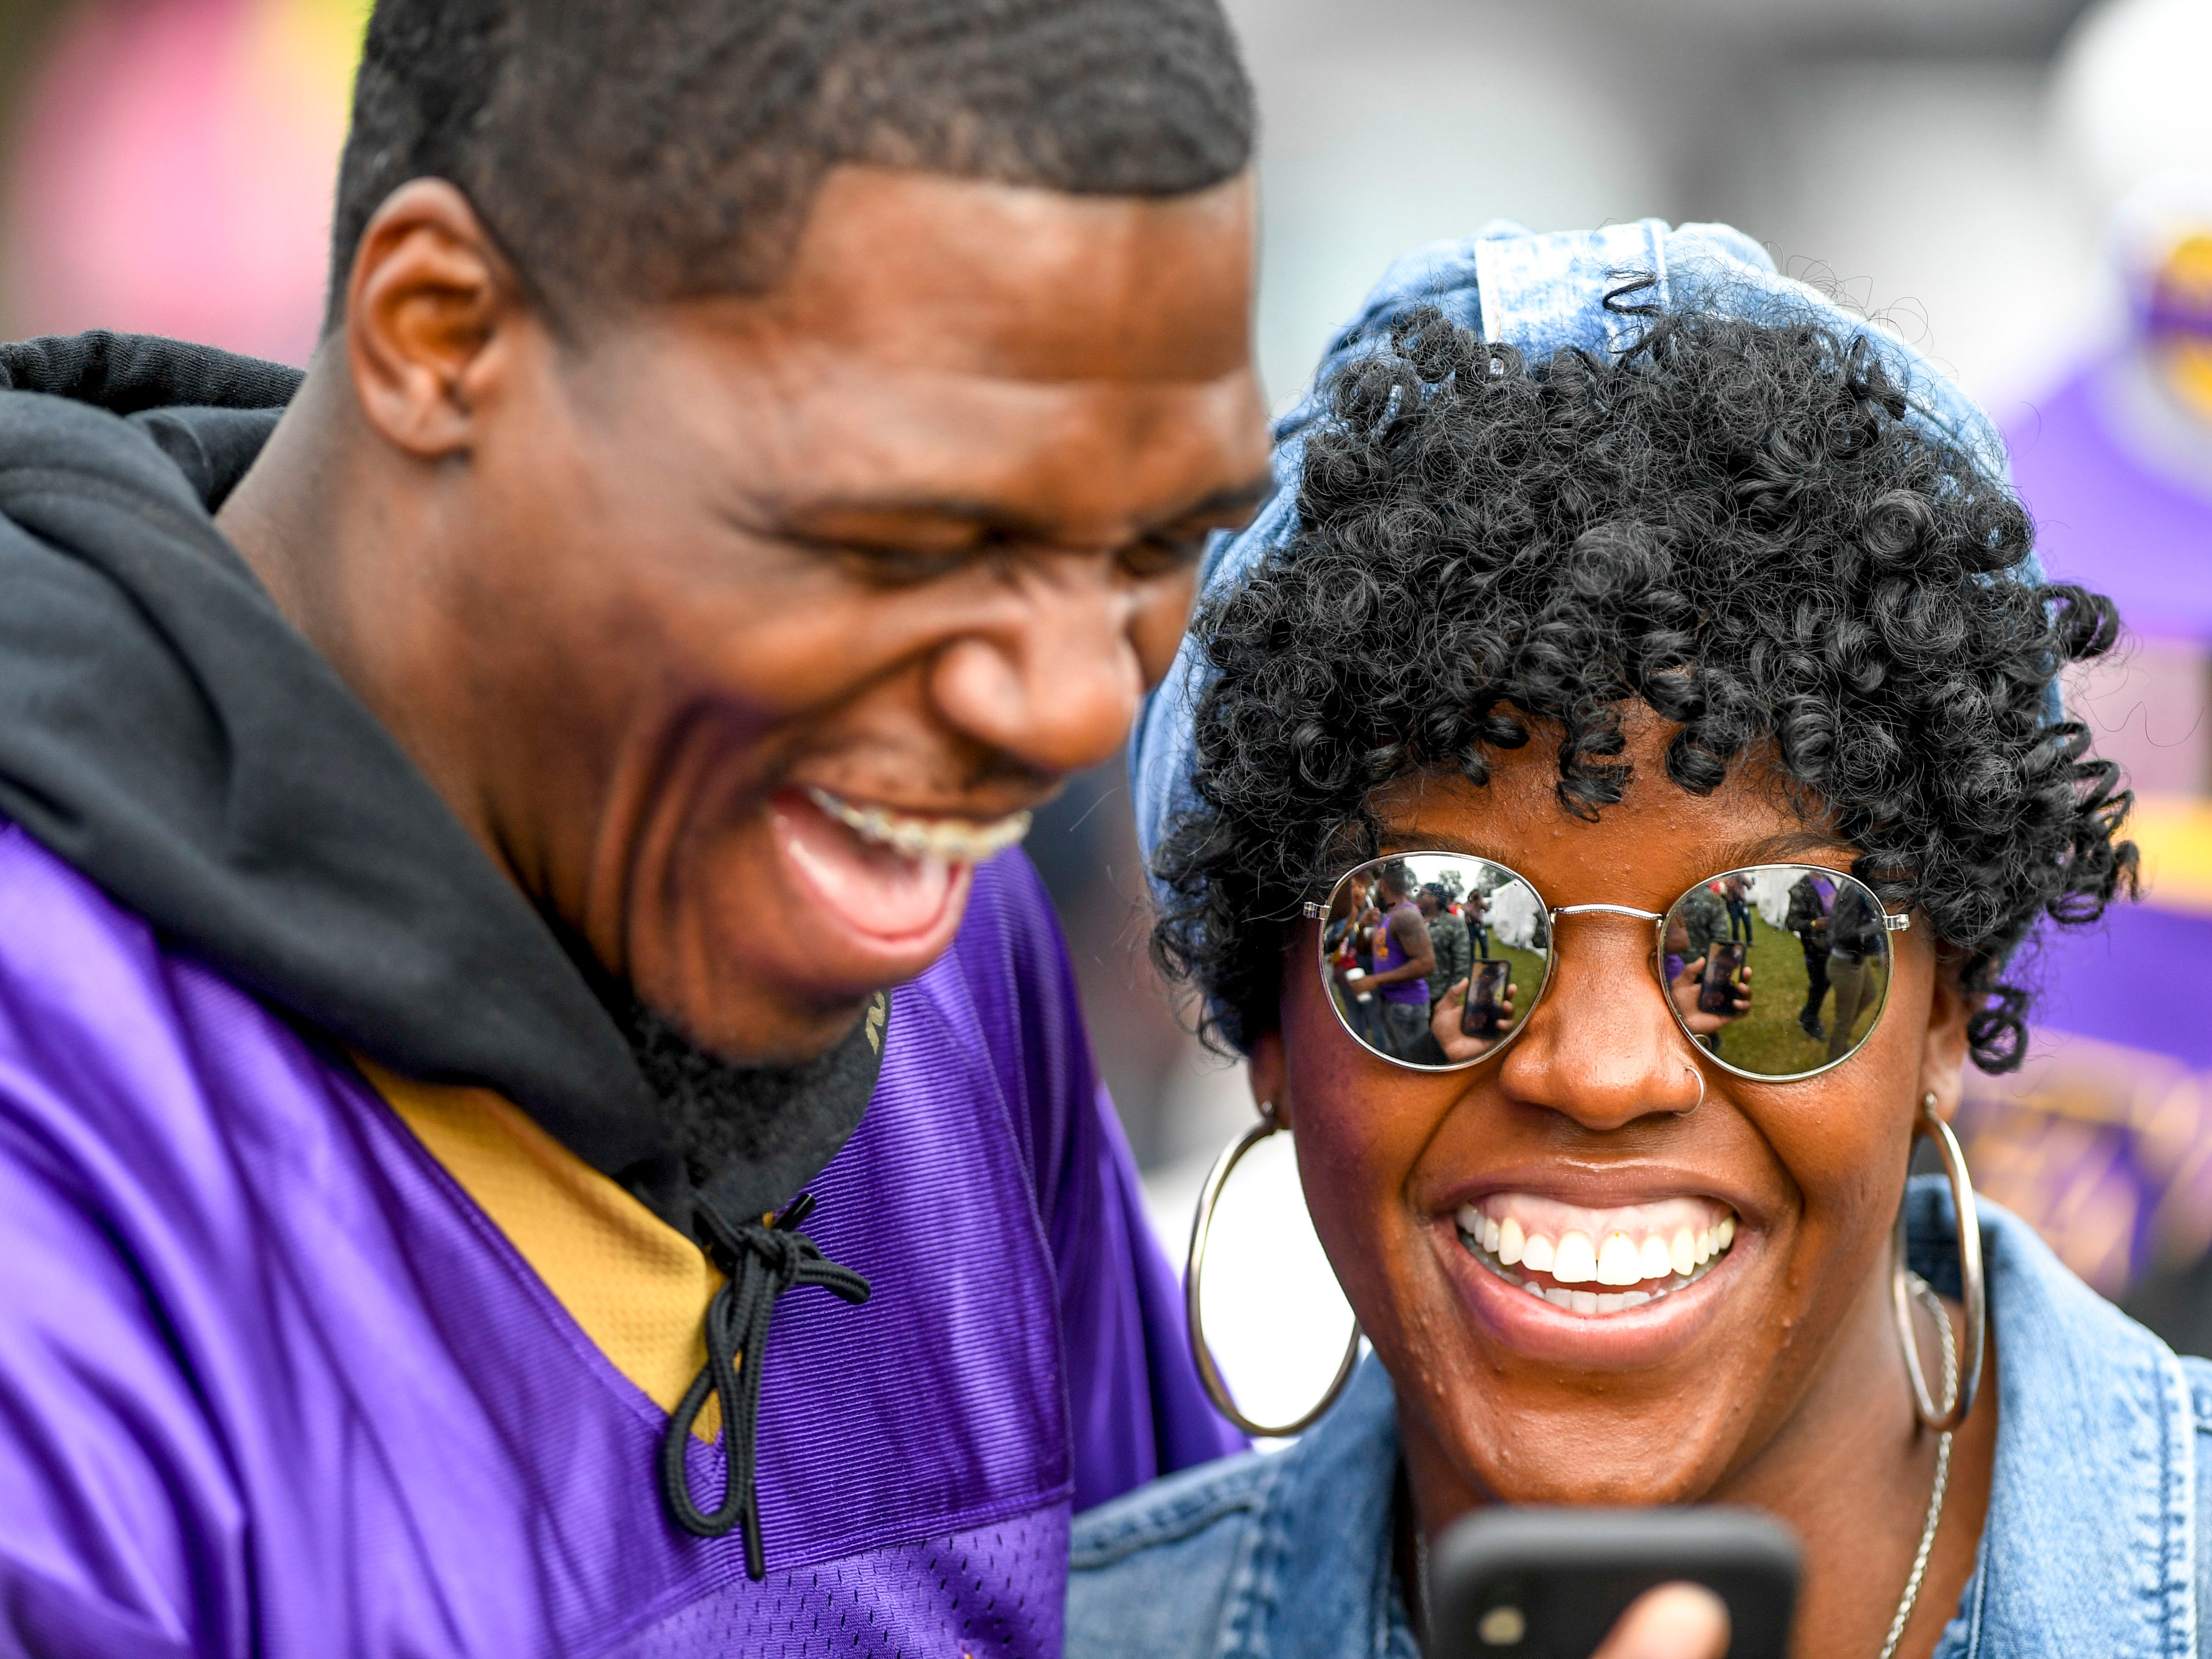 Roderick Thomas, left, and Norca Lou, right, laugh while video chatting with a friend amidst homecoming celebrations at T.R. White Sportsplex in Jackson, Tenn., on Saturday, Oct. 13, 2018.